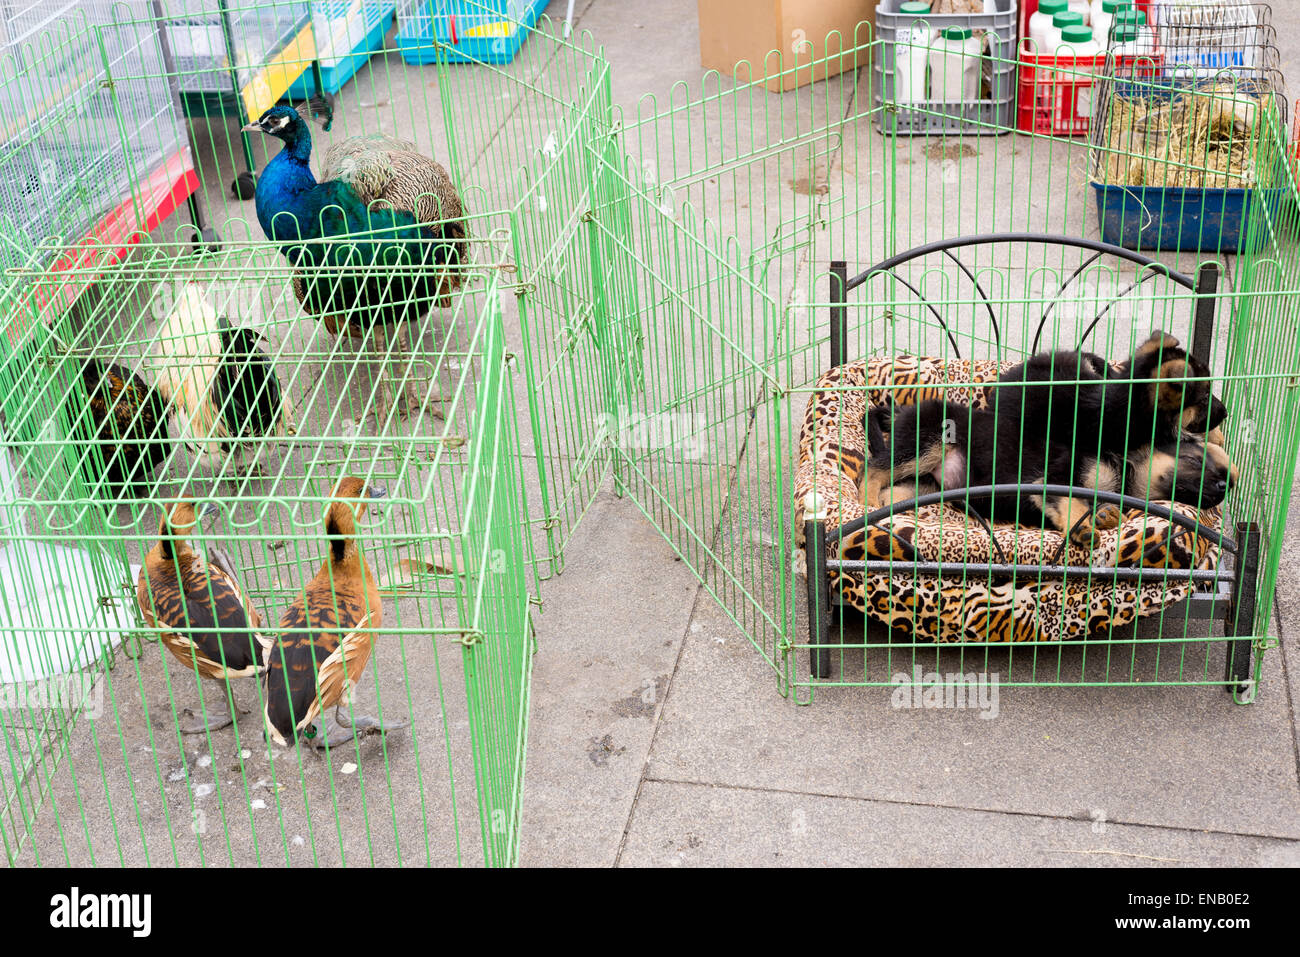 caged animlas and birds at street market, Porto, Portugal - Stock Image